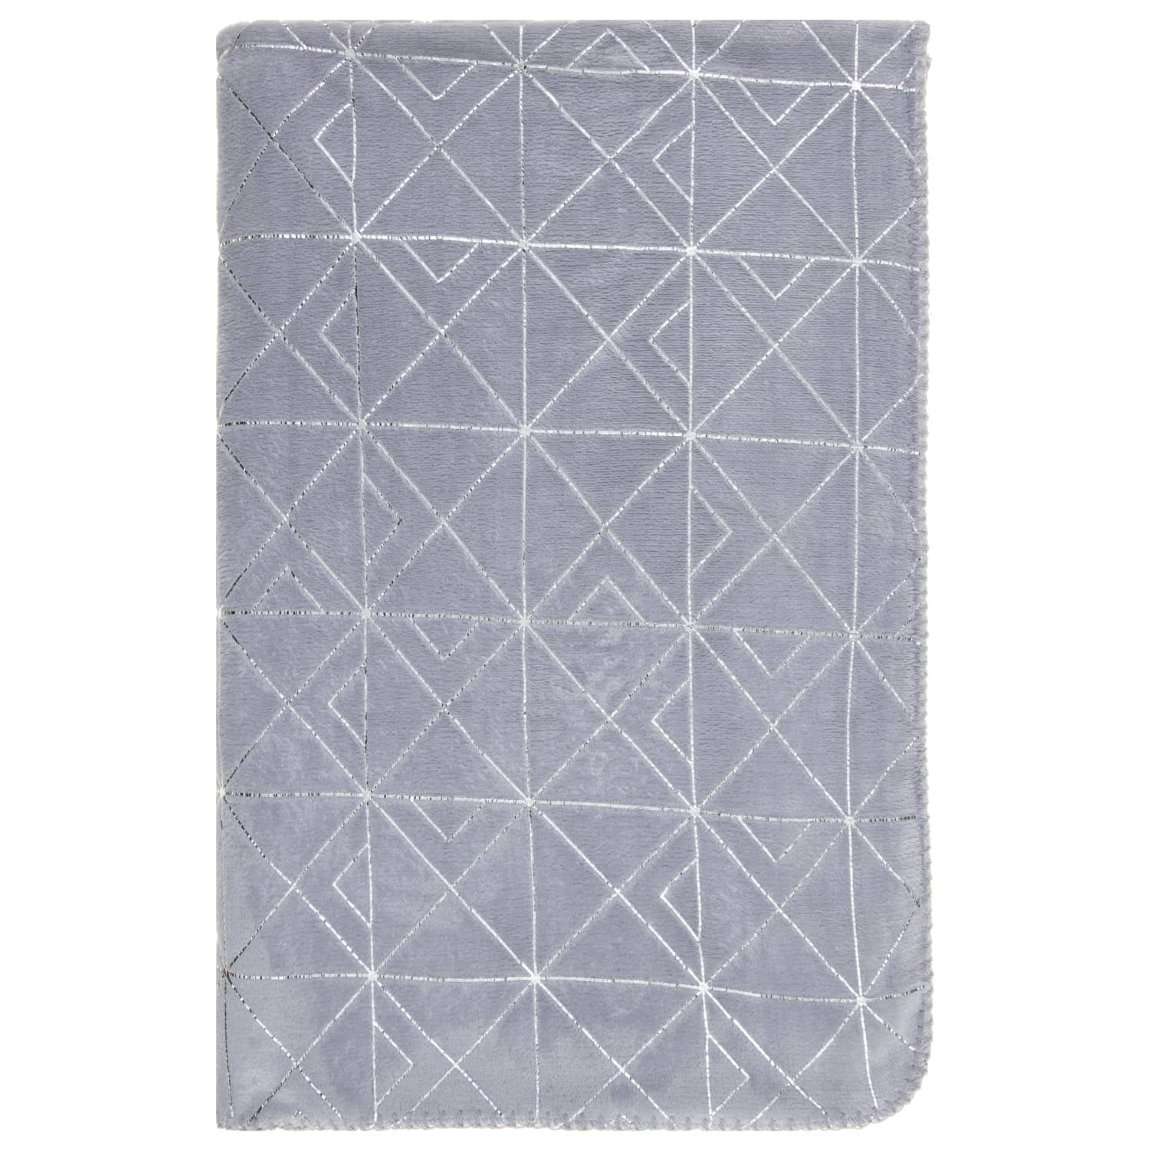 Karina Bailey Orla Art Deco Geo Throw - Silver